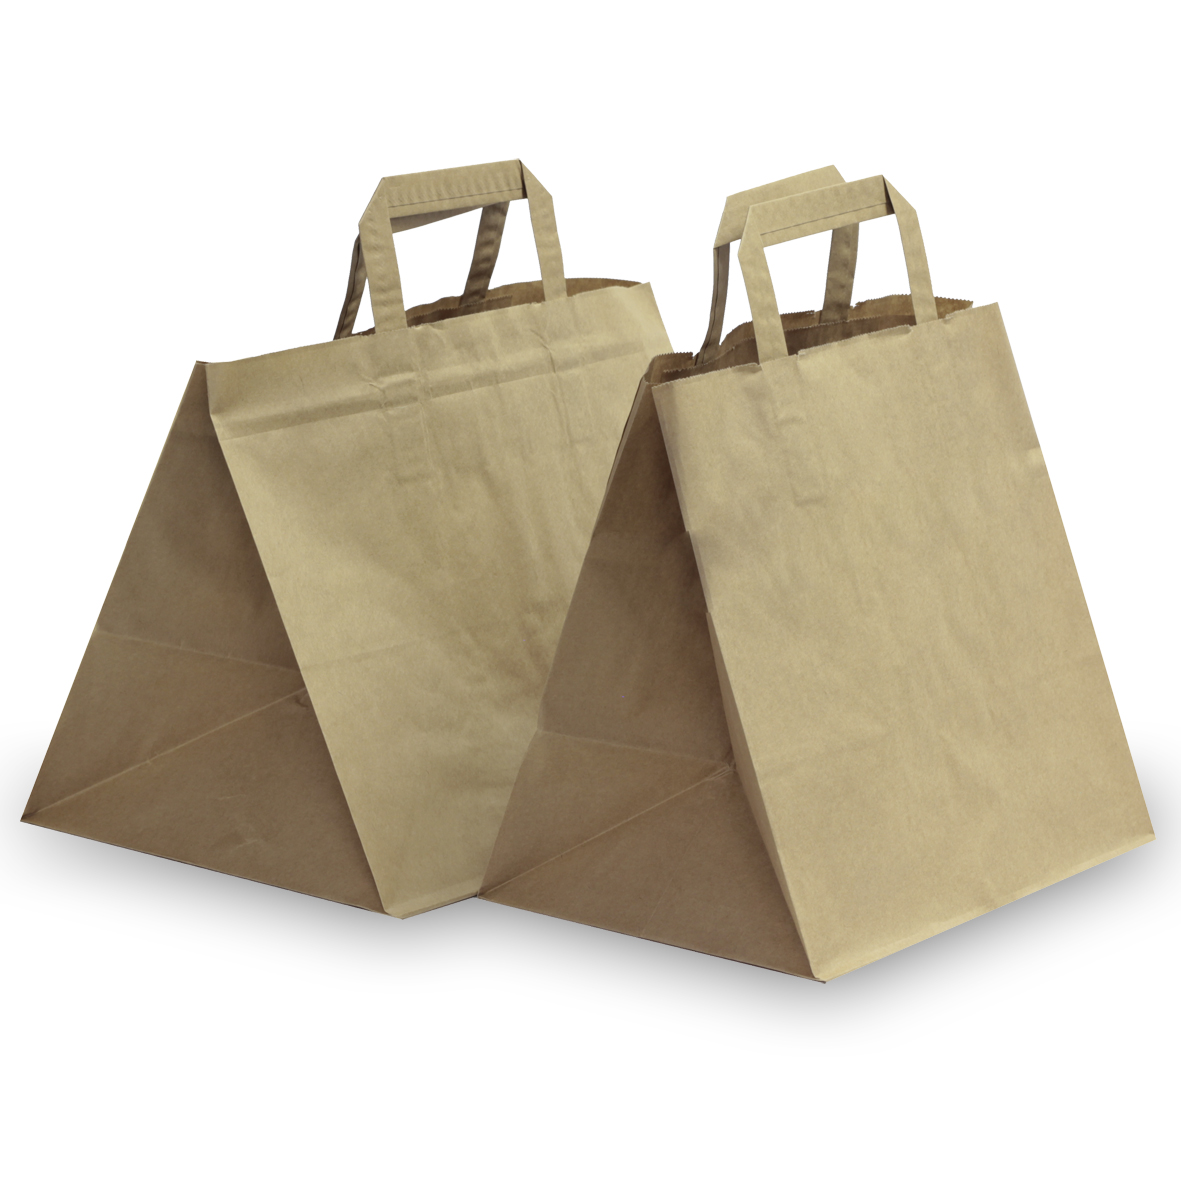 carrier bags State legislatures have considered a number of measures to reduce the  prevalence of plastic bags at grocery stores and other businesses.